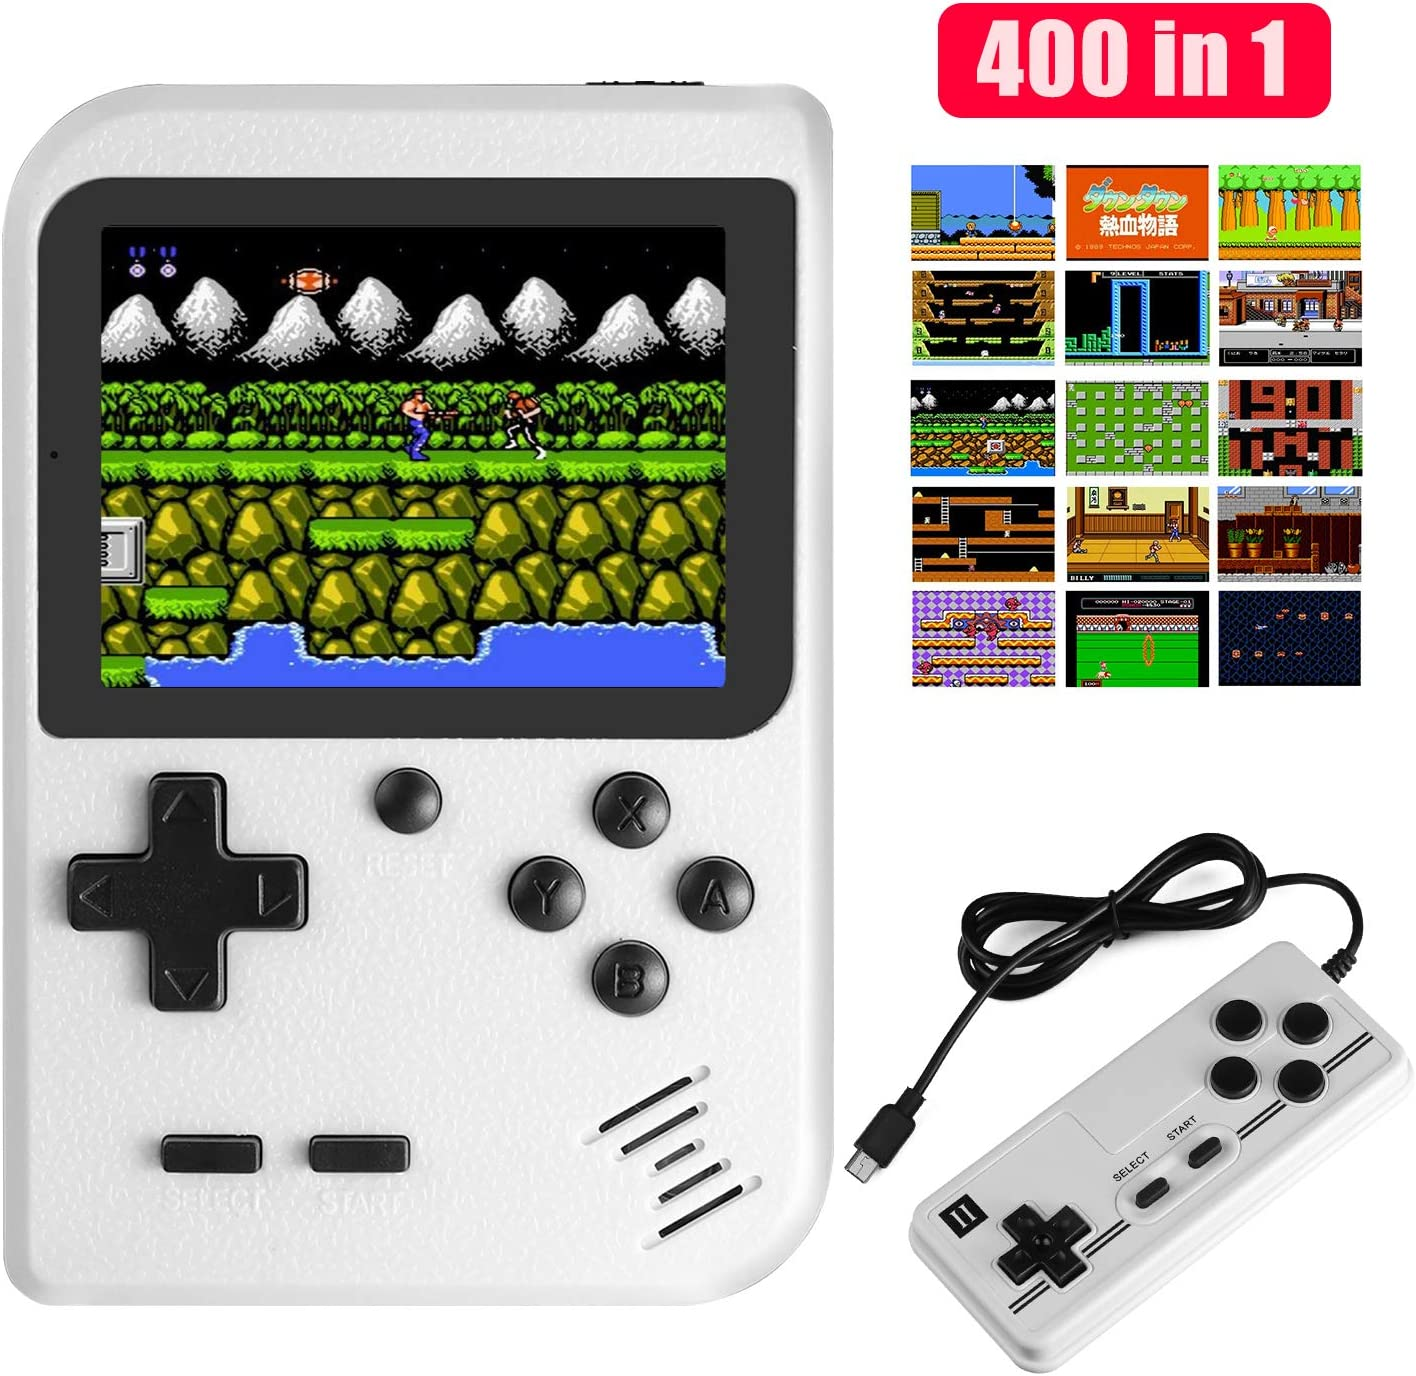 JAMSWALL Handheld Game Console, 400 Classical FC Games 2.8-Inch Screen 800mAh Rechargeable Battery Portable Retro Video Game Console Support for Connecting TV and Two Players(White): Toys & Games